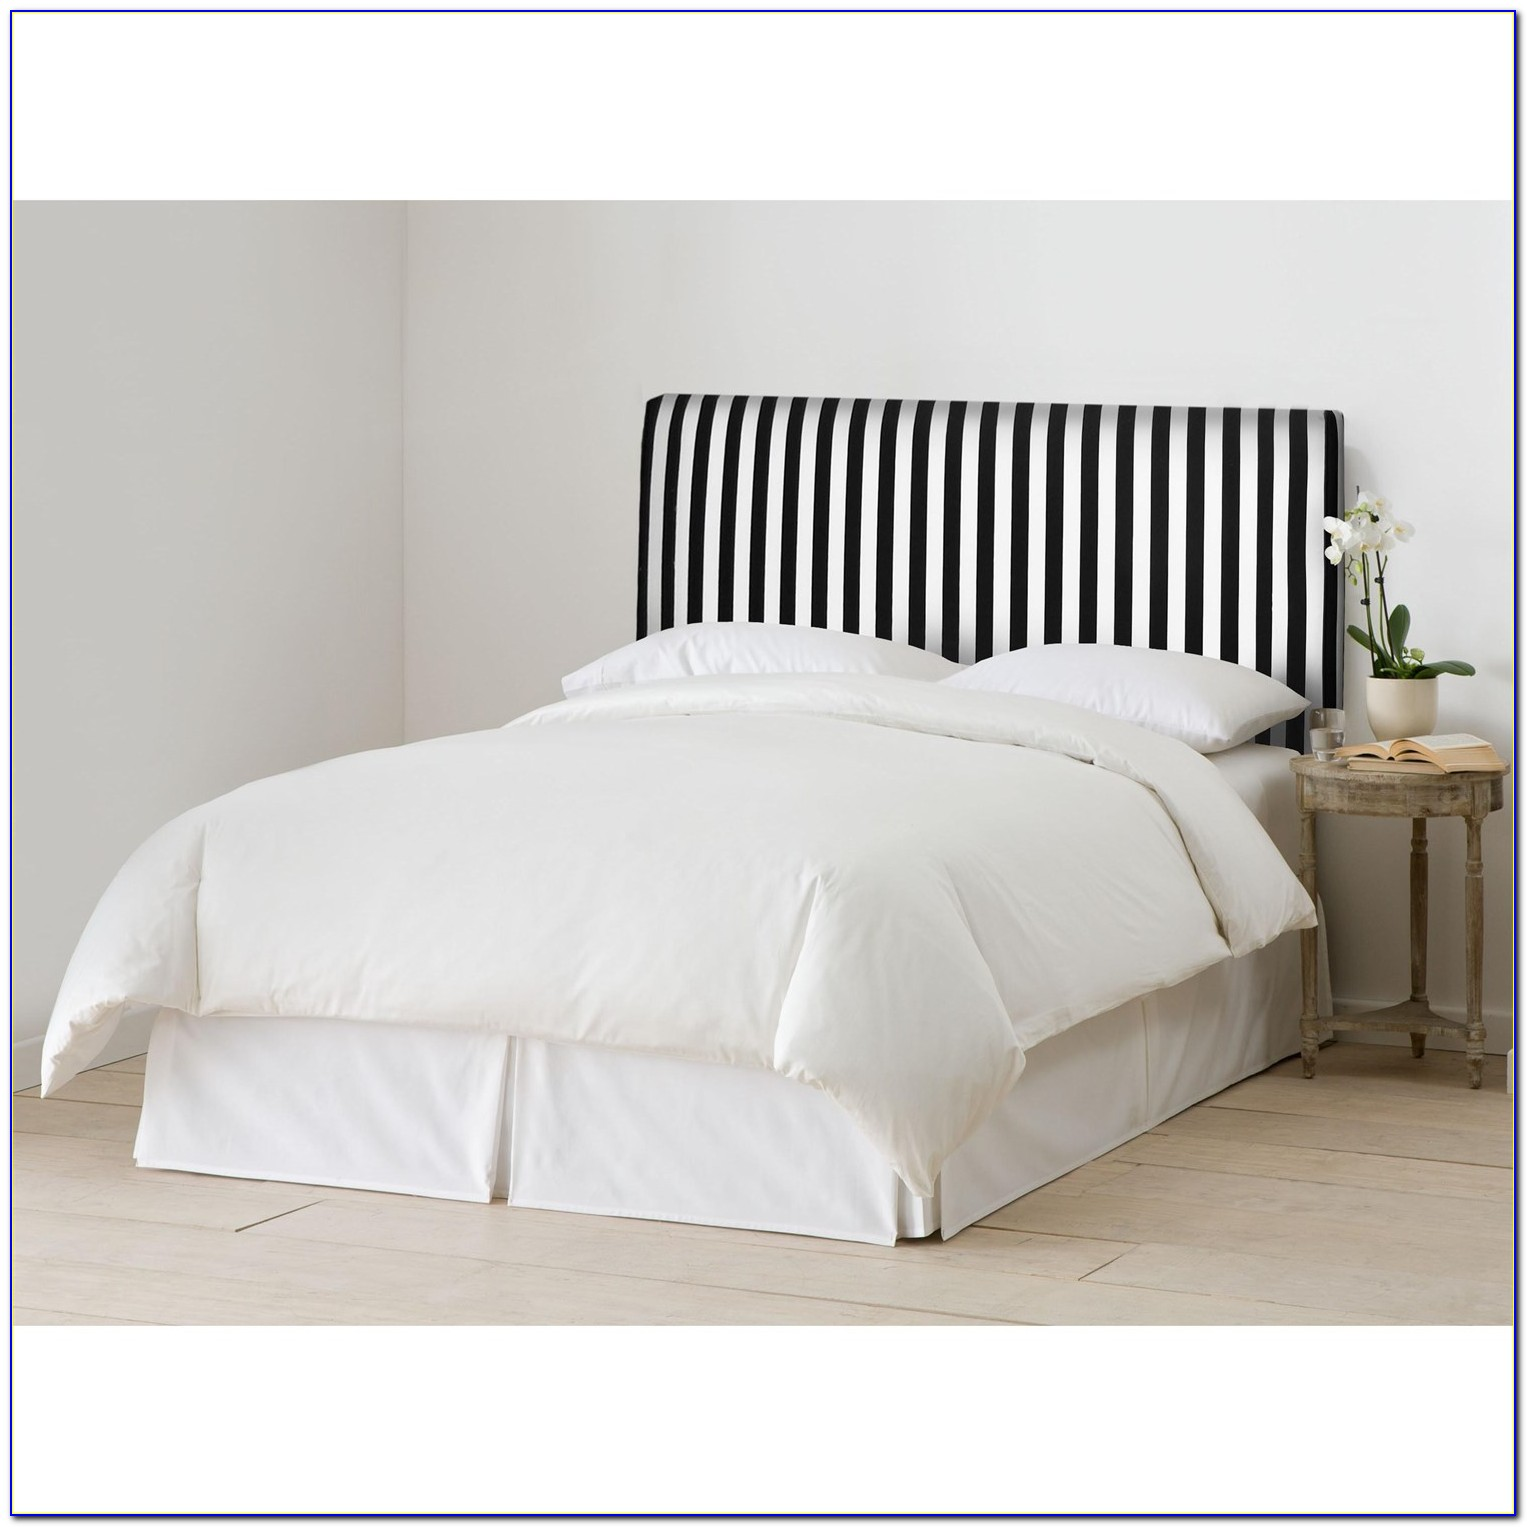 King Bed Headboard Dimensions